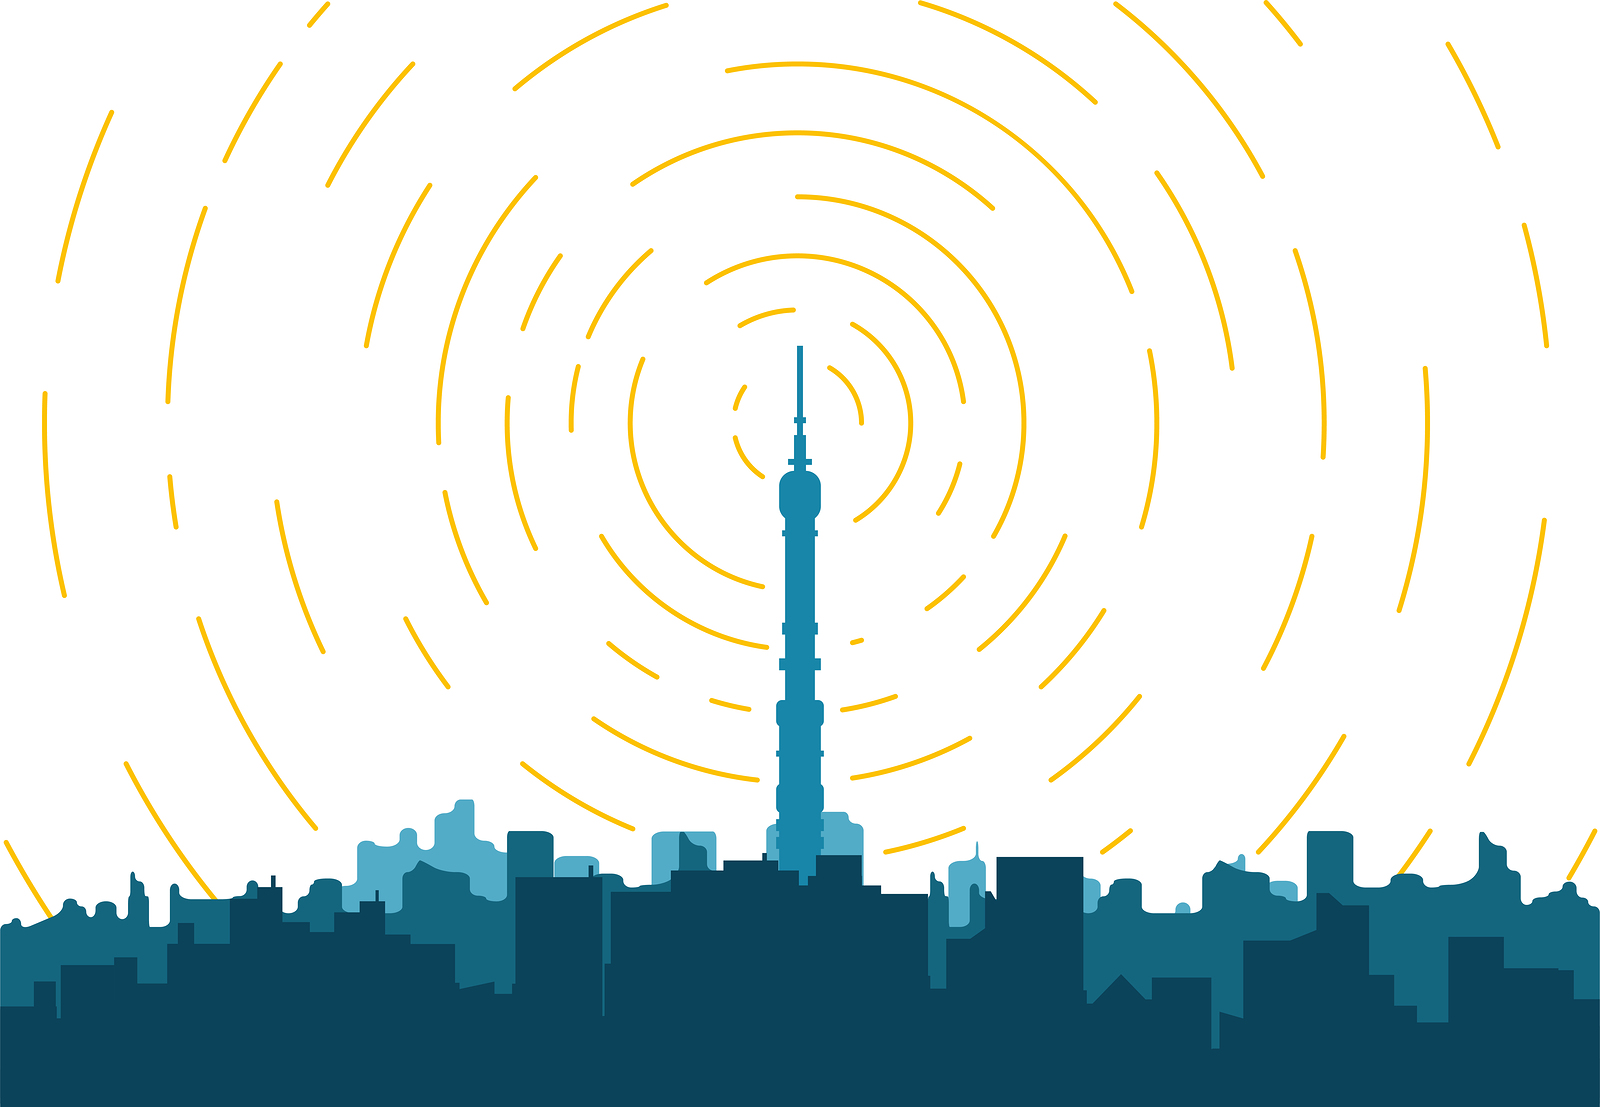 Radio transmitter. Tower with tv signal transmitter. City with buildings and skyscrapers on background. Flat style line vector illustration. Business city center with modern houses an radio tower.